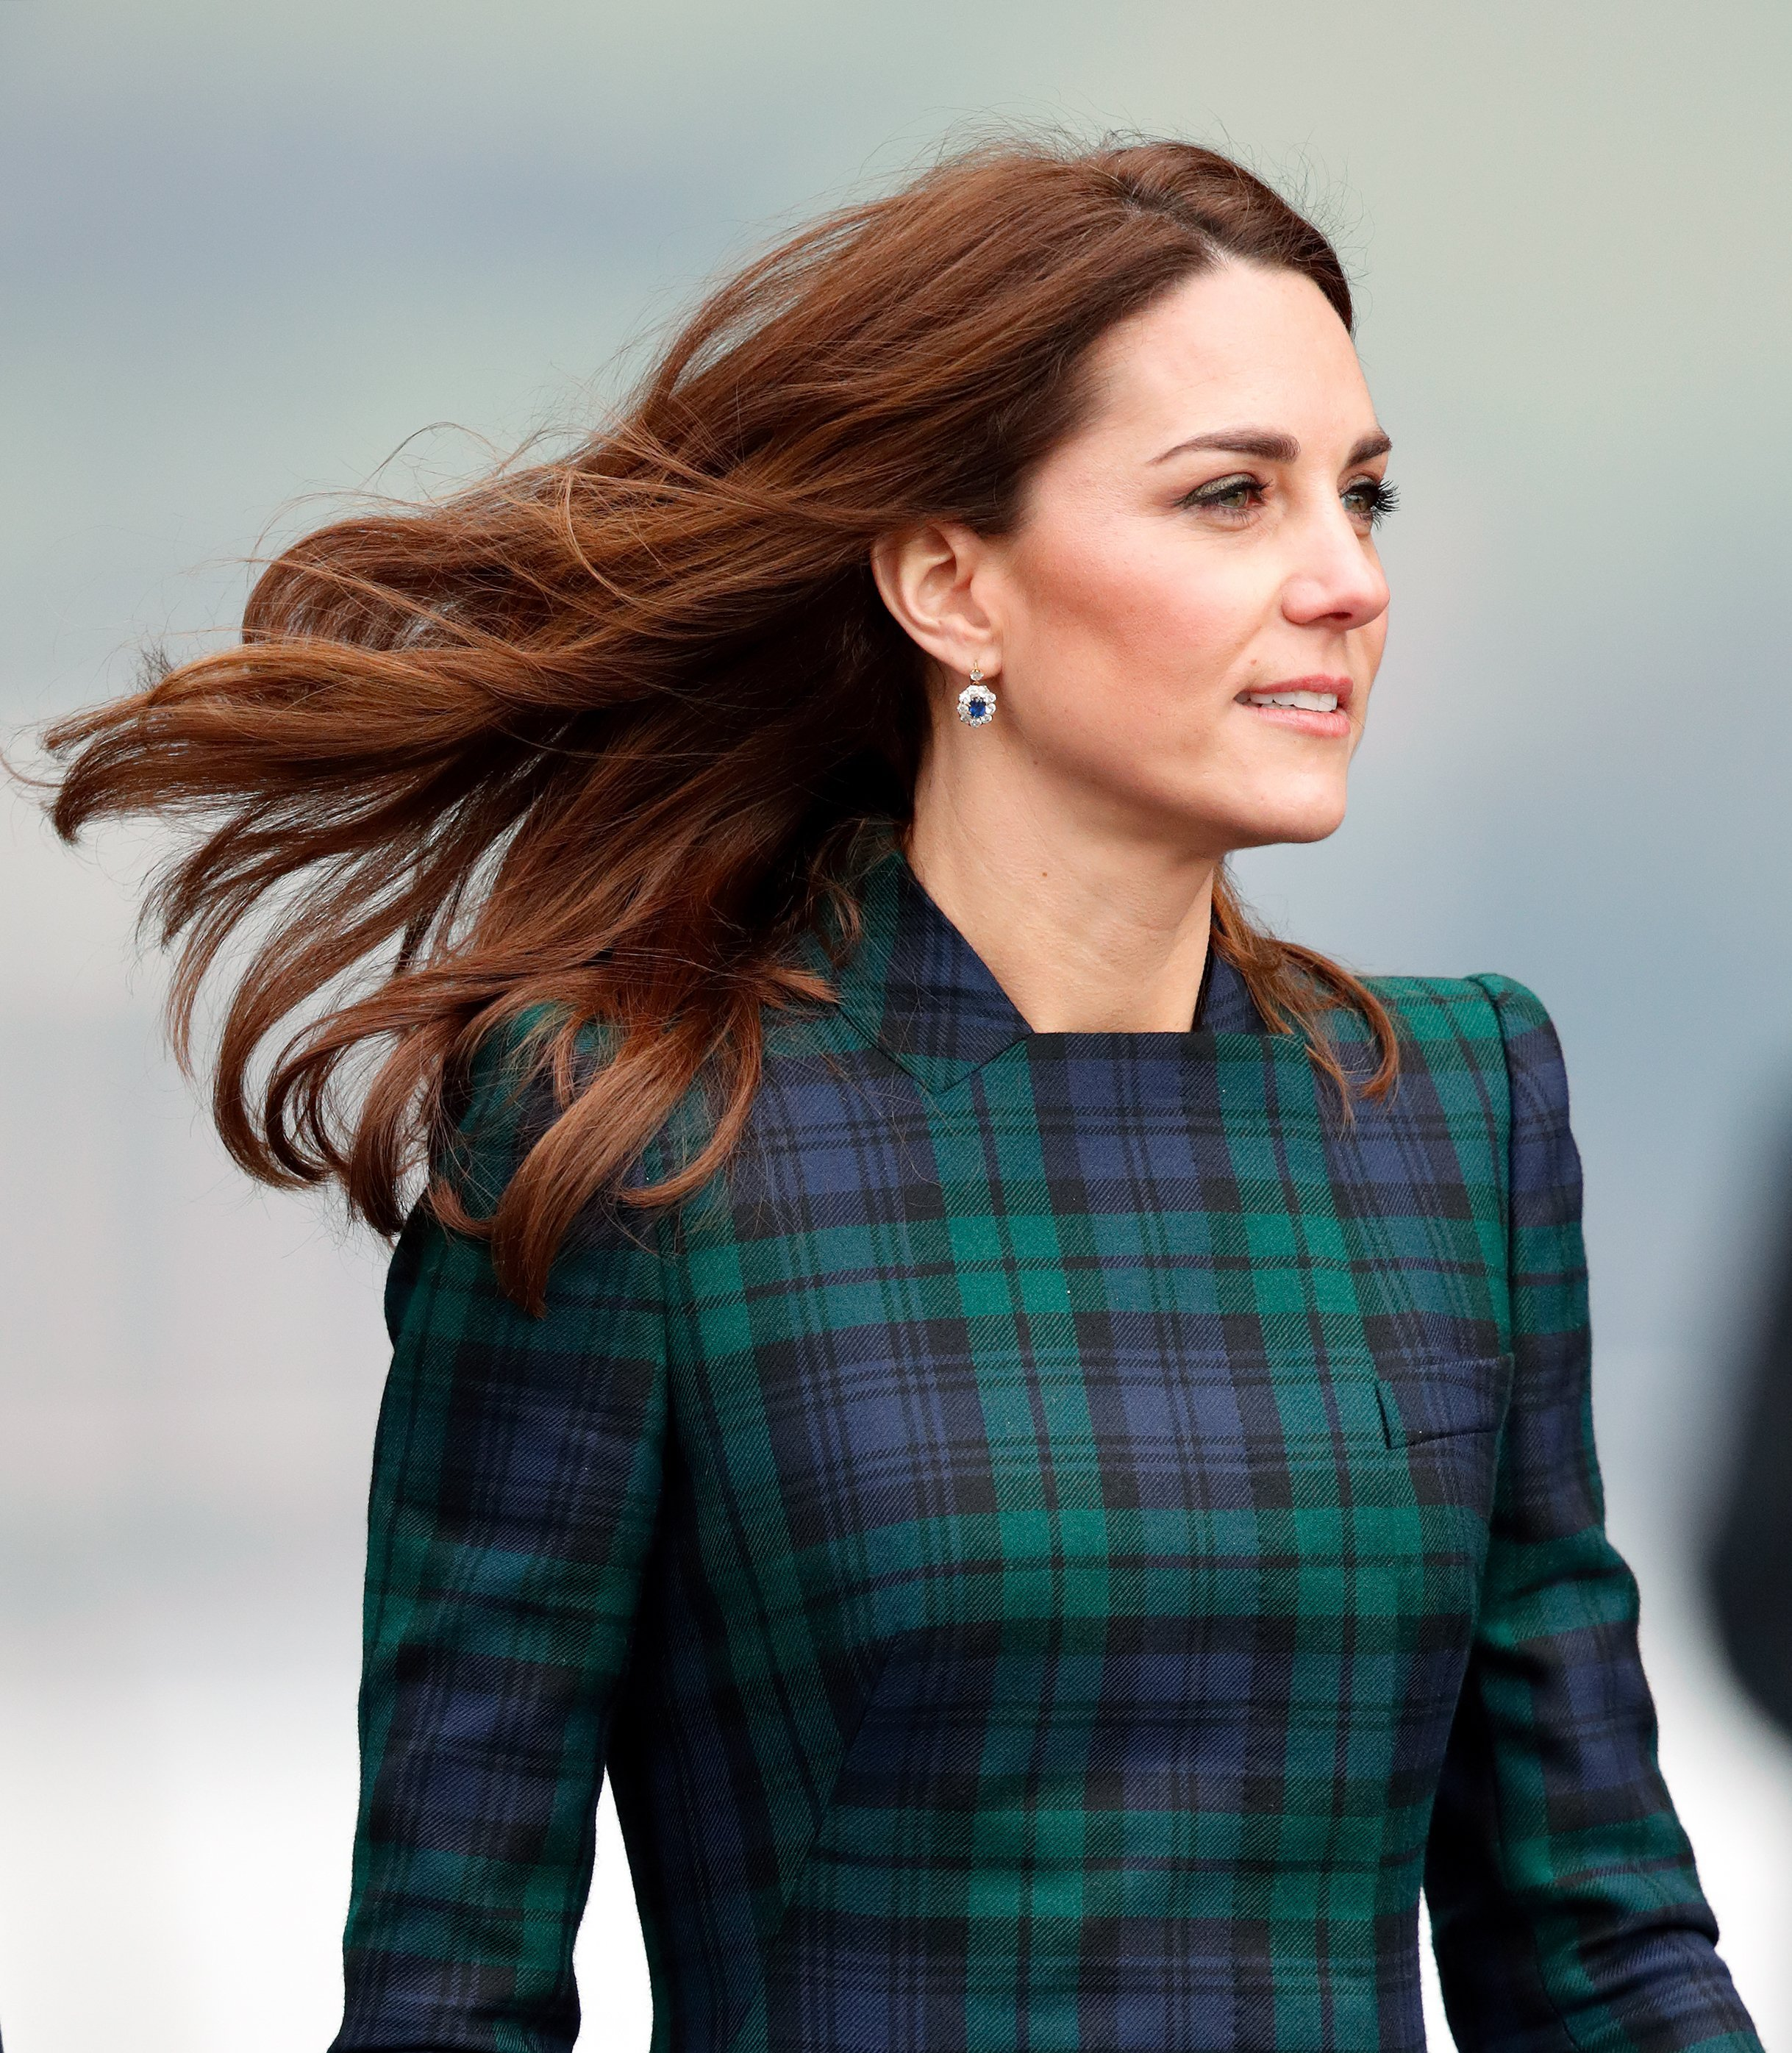 La chevelure brillante de Kate Middleton. l Source: Getty Images